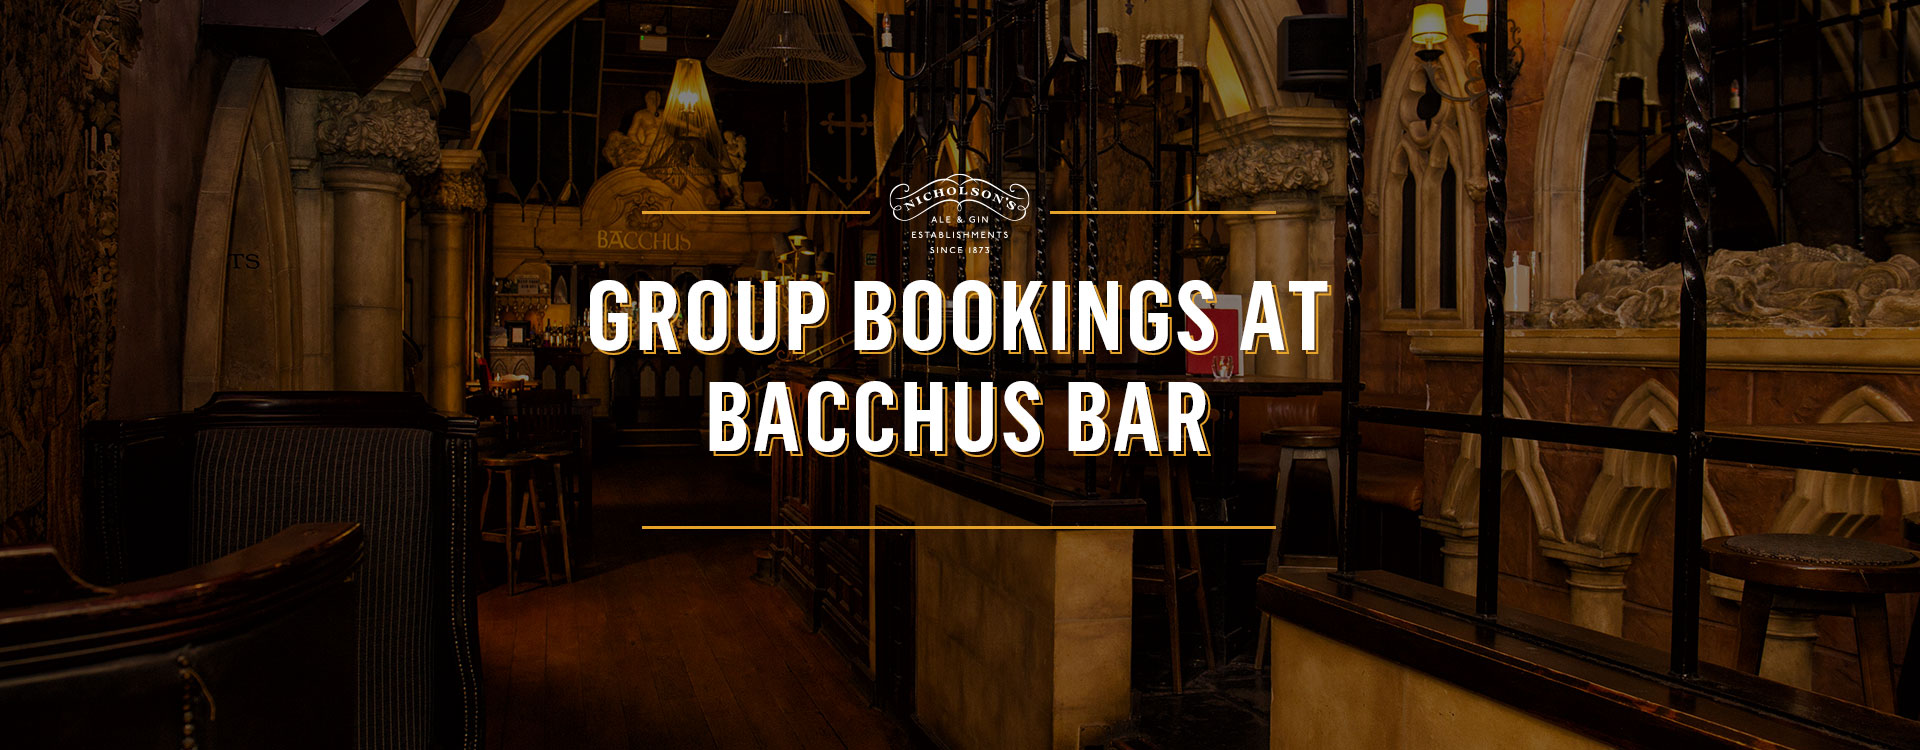 Group Bookings at Bacchus Bar